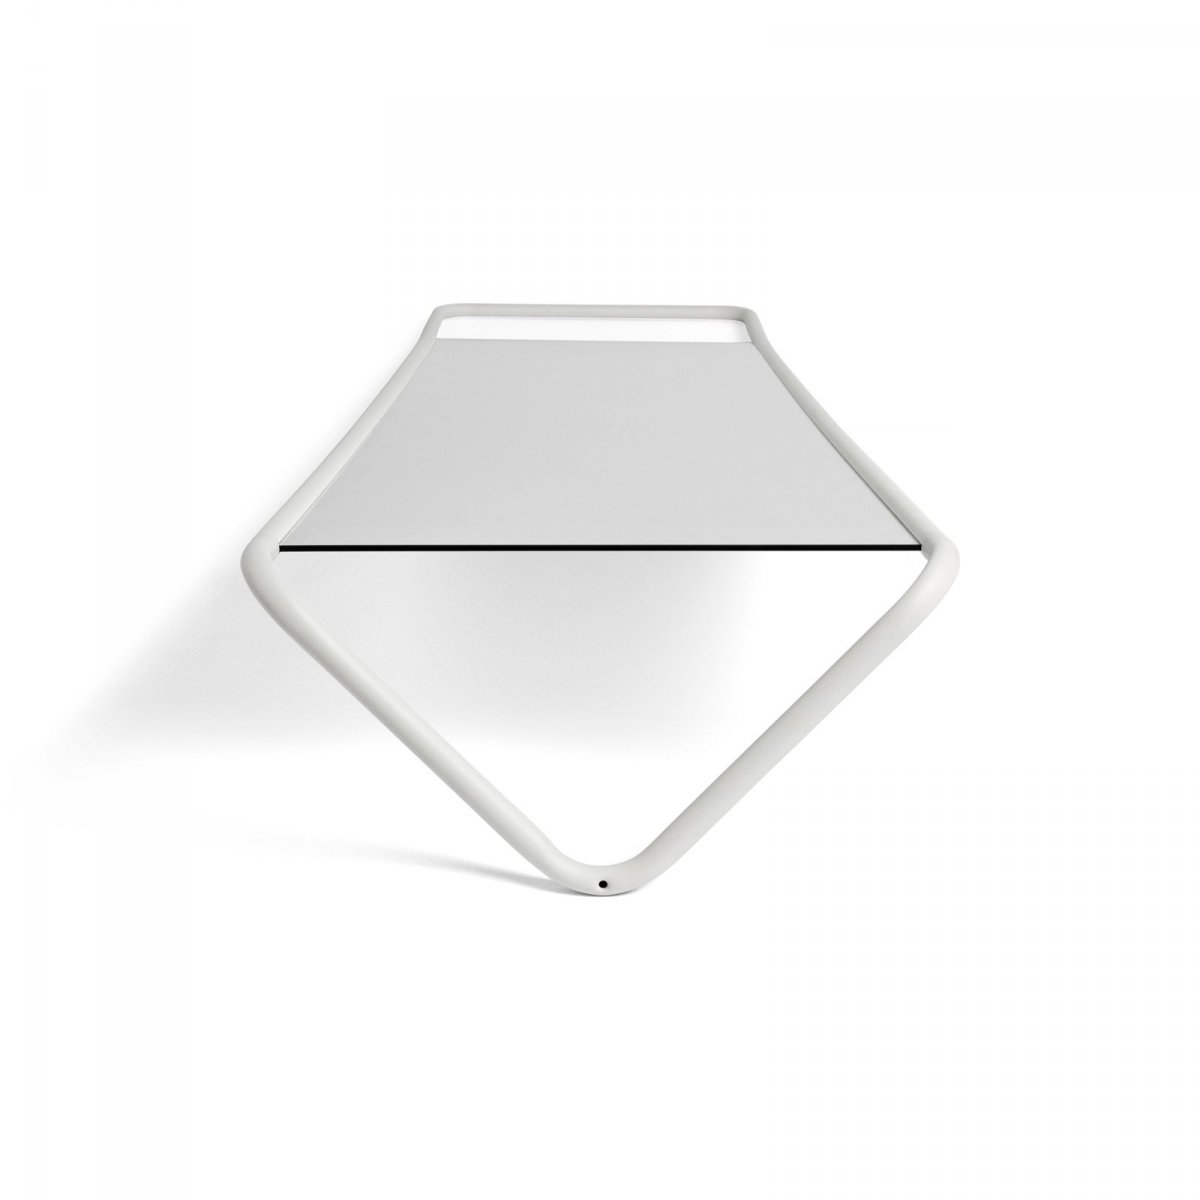 Kaschkasch Floor Mirror, white, top view.